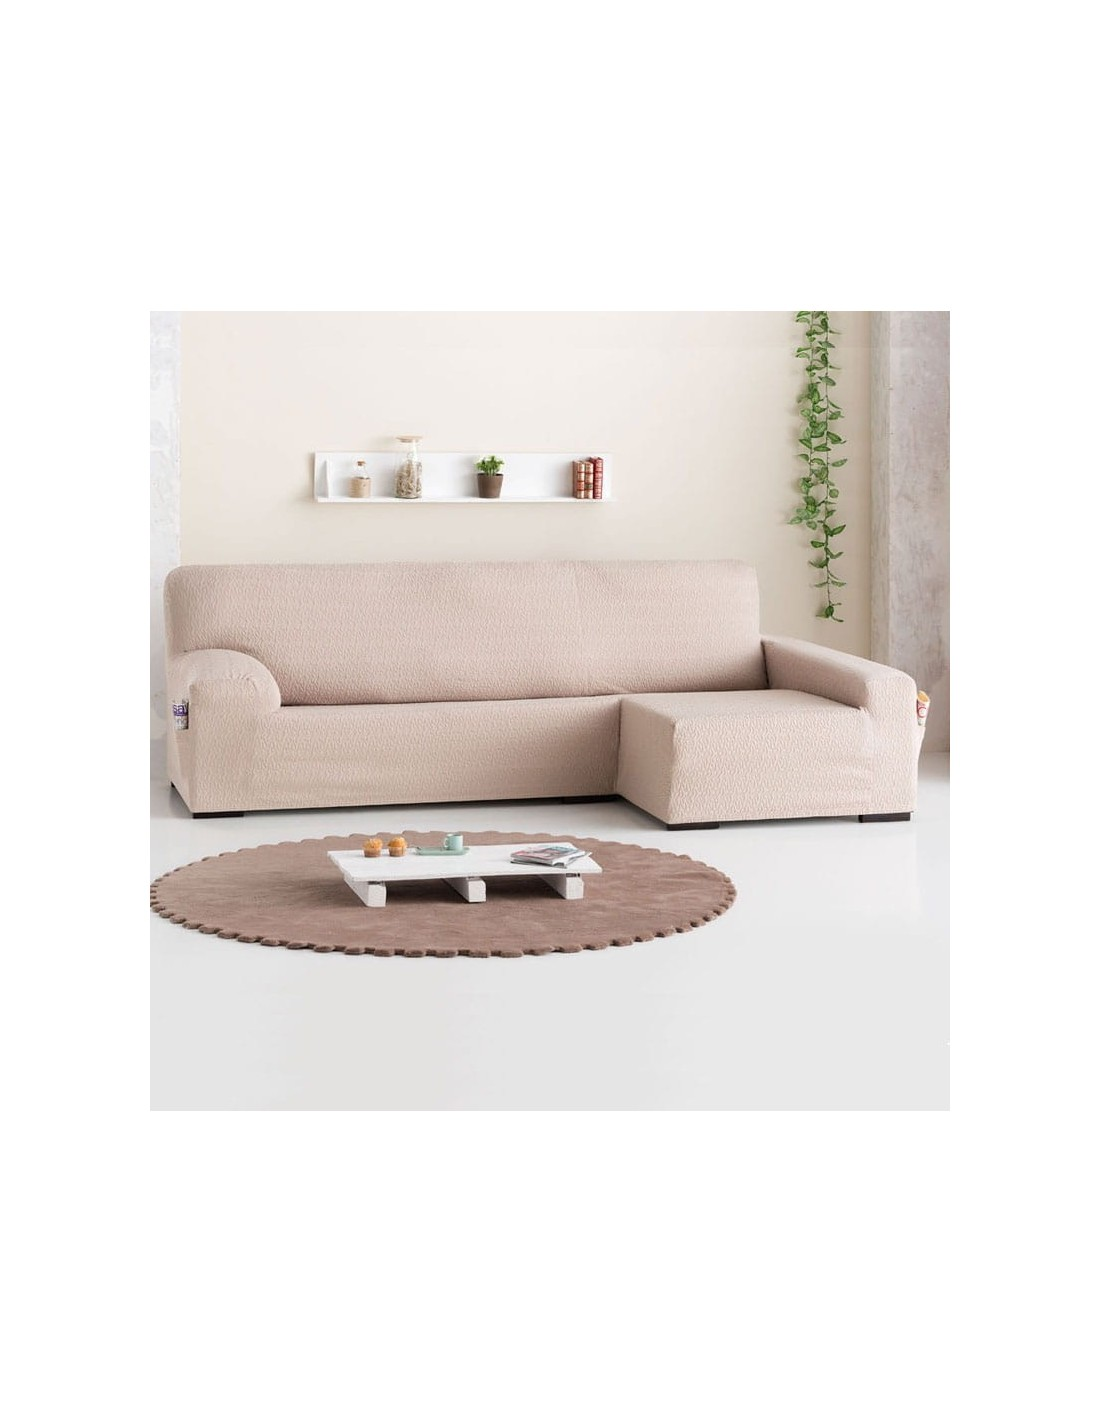 Funda sof chaise longue eysa brazo largo tendre sofundas - Fundas de sofa con chaise longue ...